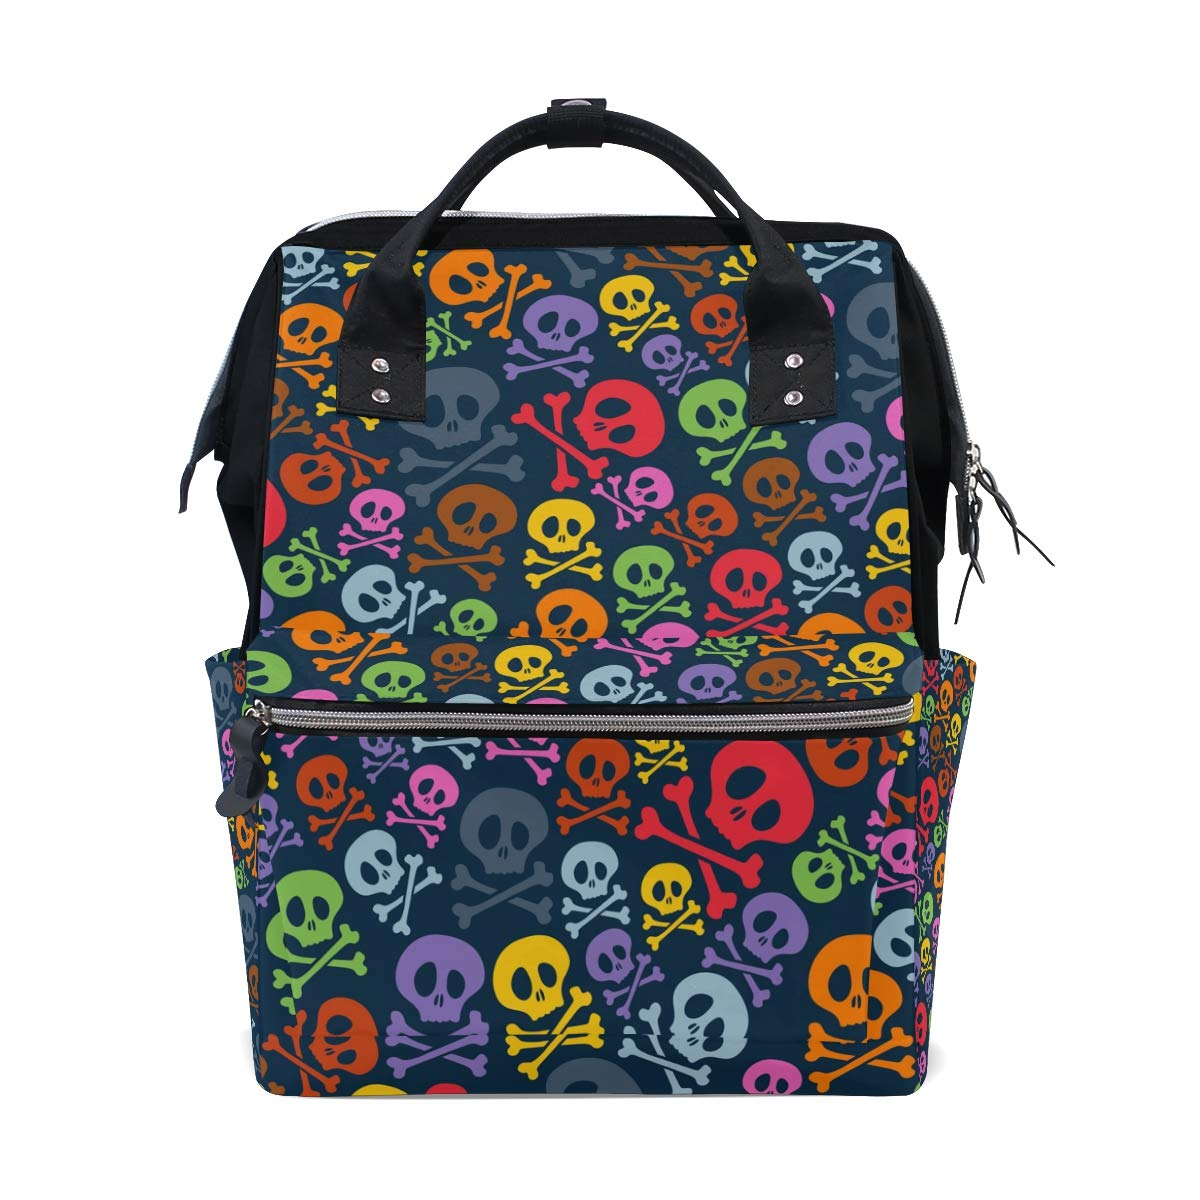 MERRYSUGAR Diaper Bag Backpack Travel Bag Large Multifunction Waterproof Colorful Skull Stylish and Durable Nappy Bag for Baby Care School Backpack